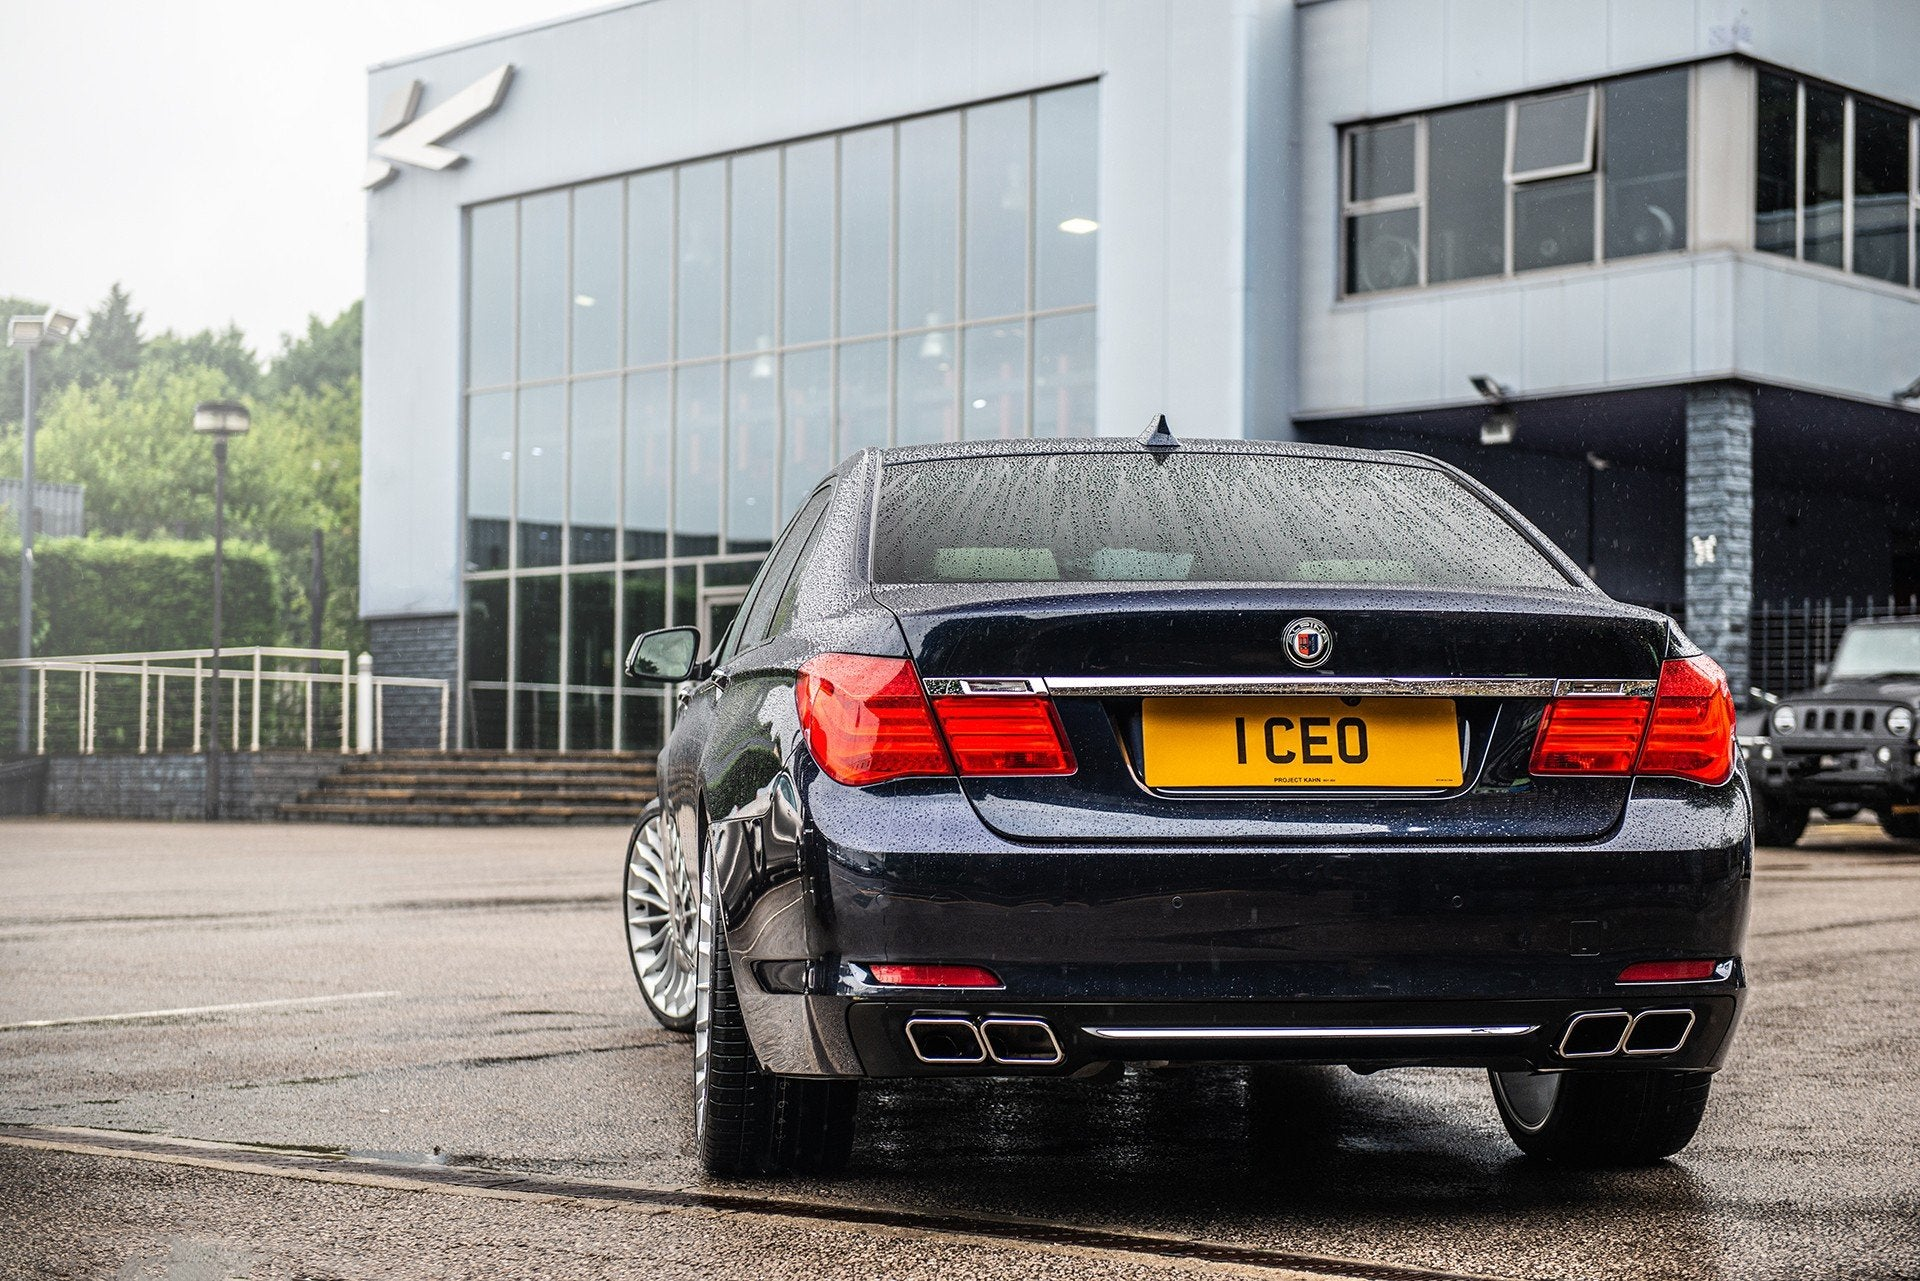 BMW 7 SERIES (2008-2015) M-SPORT REAR BUMPER DIFFUSER WITH EXHAUST TIPS - Project Kahn